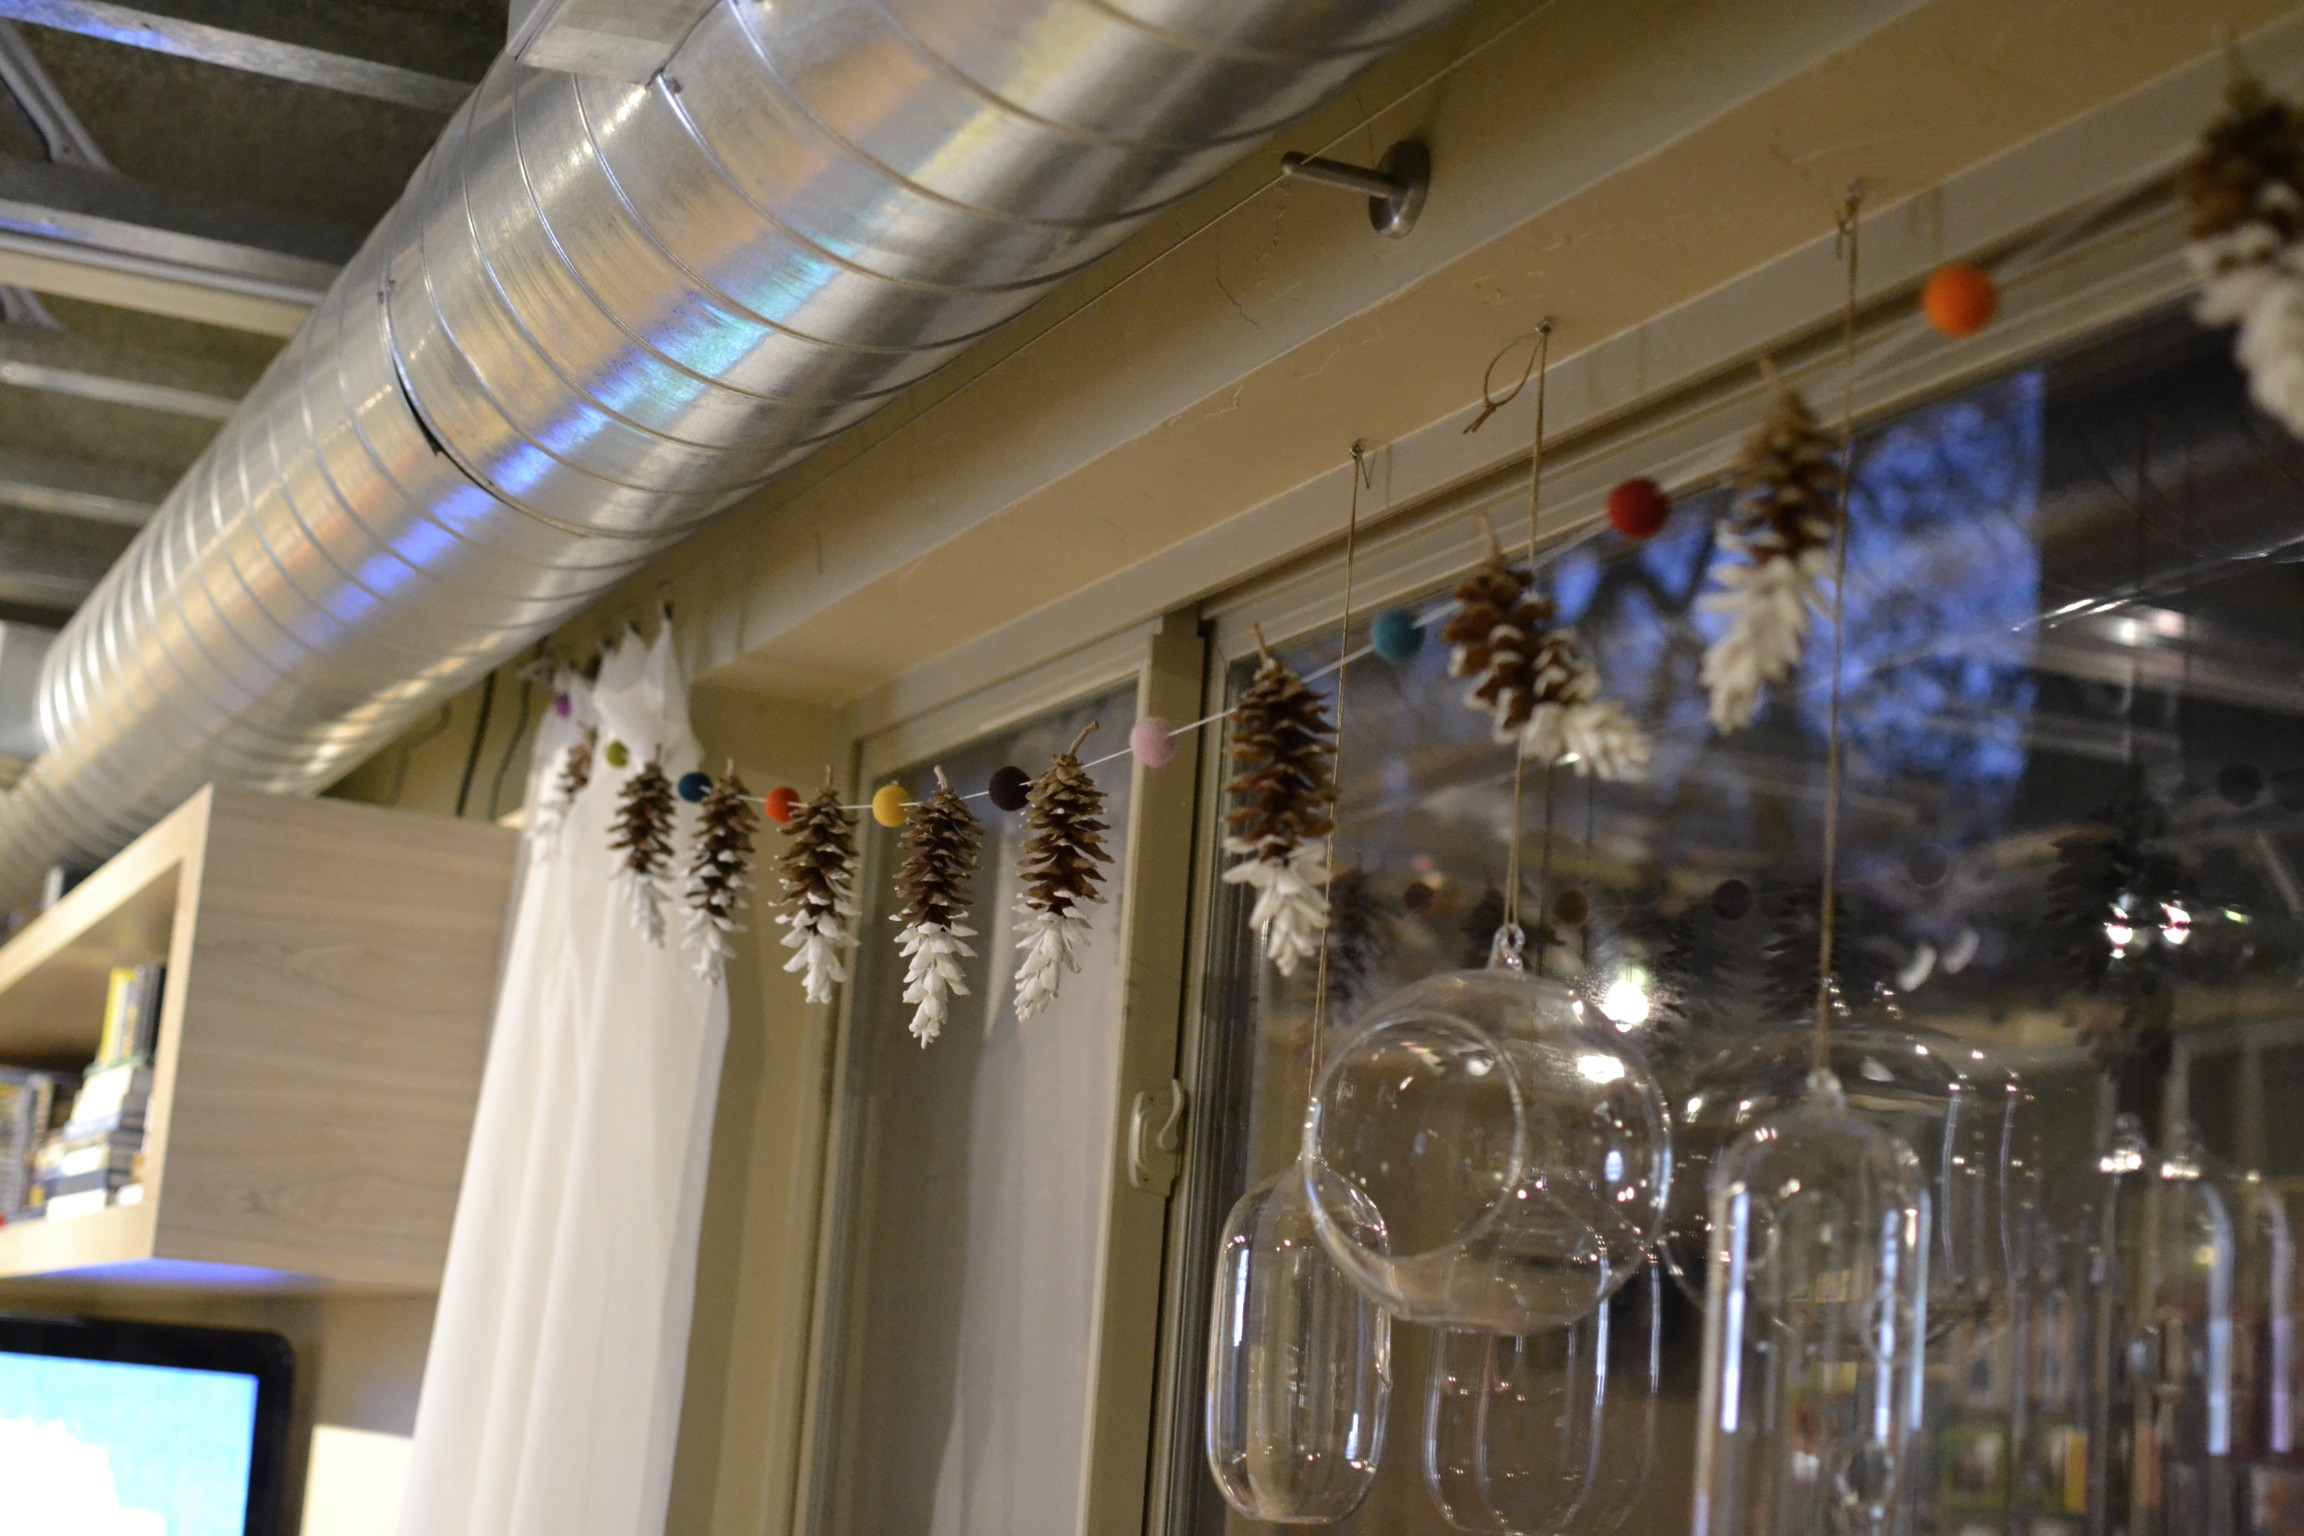 after you have reached your desired length, tie a loop at each end of the garland and hang! this does get a little heavy so be sure to fasten it securely to the wall. so much fun!